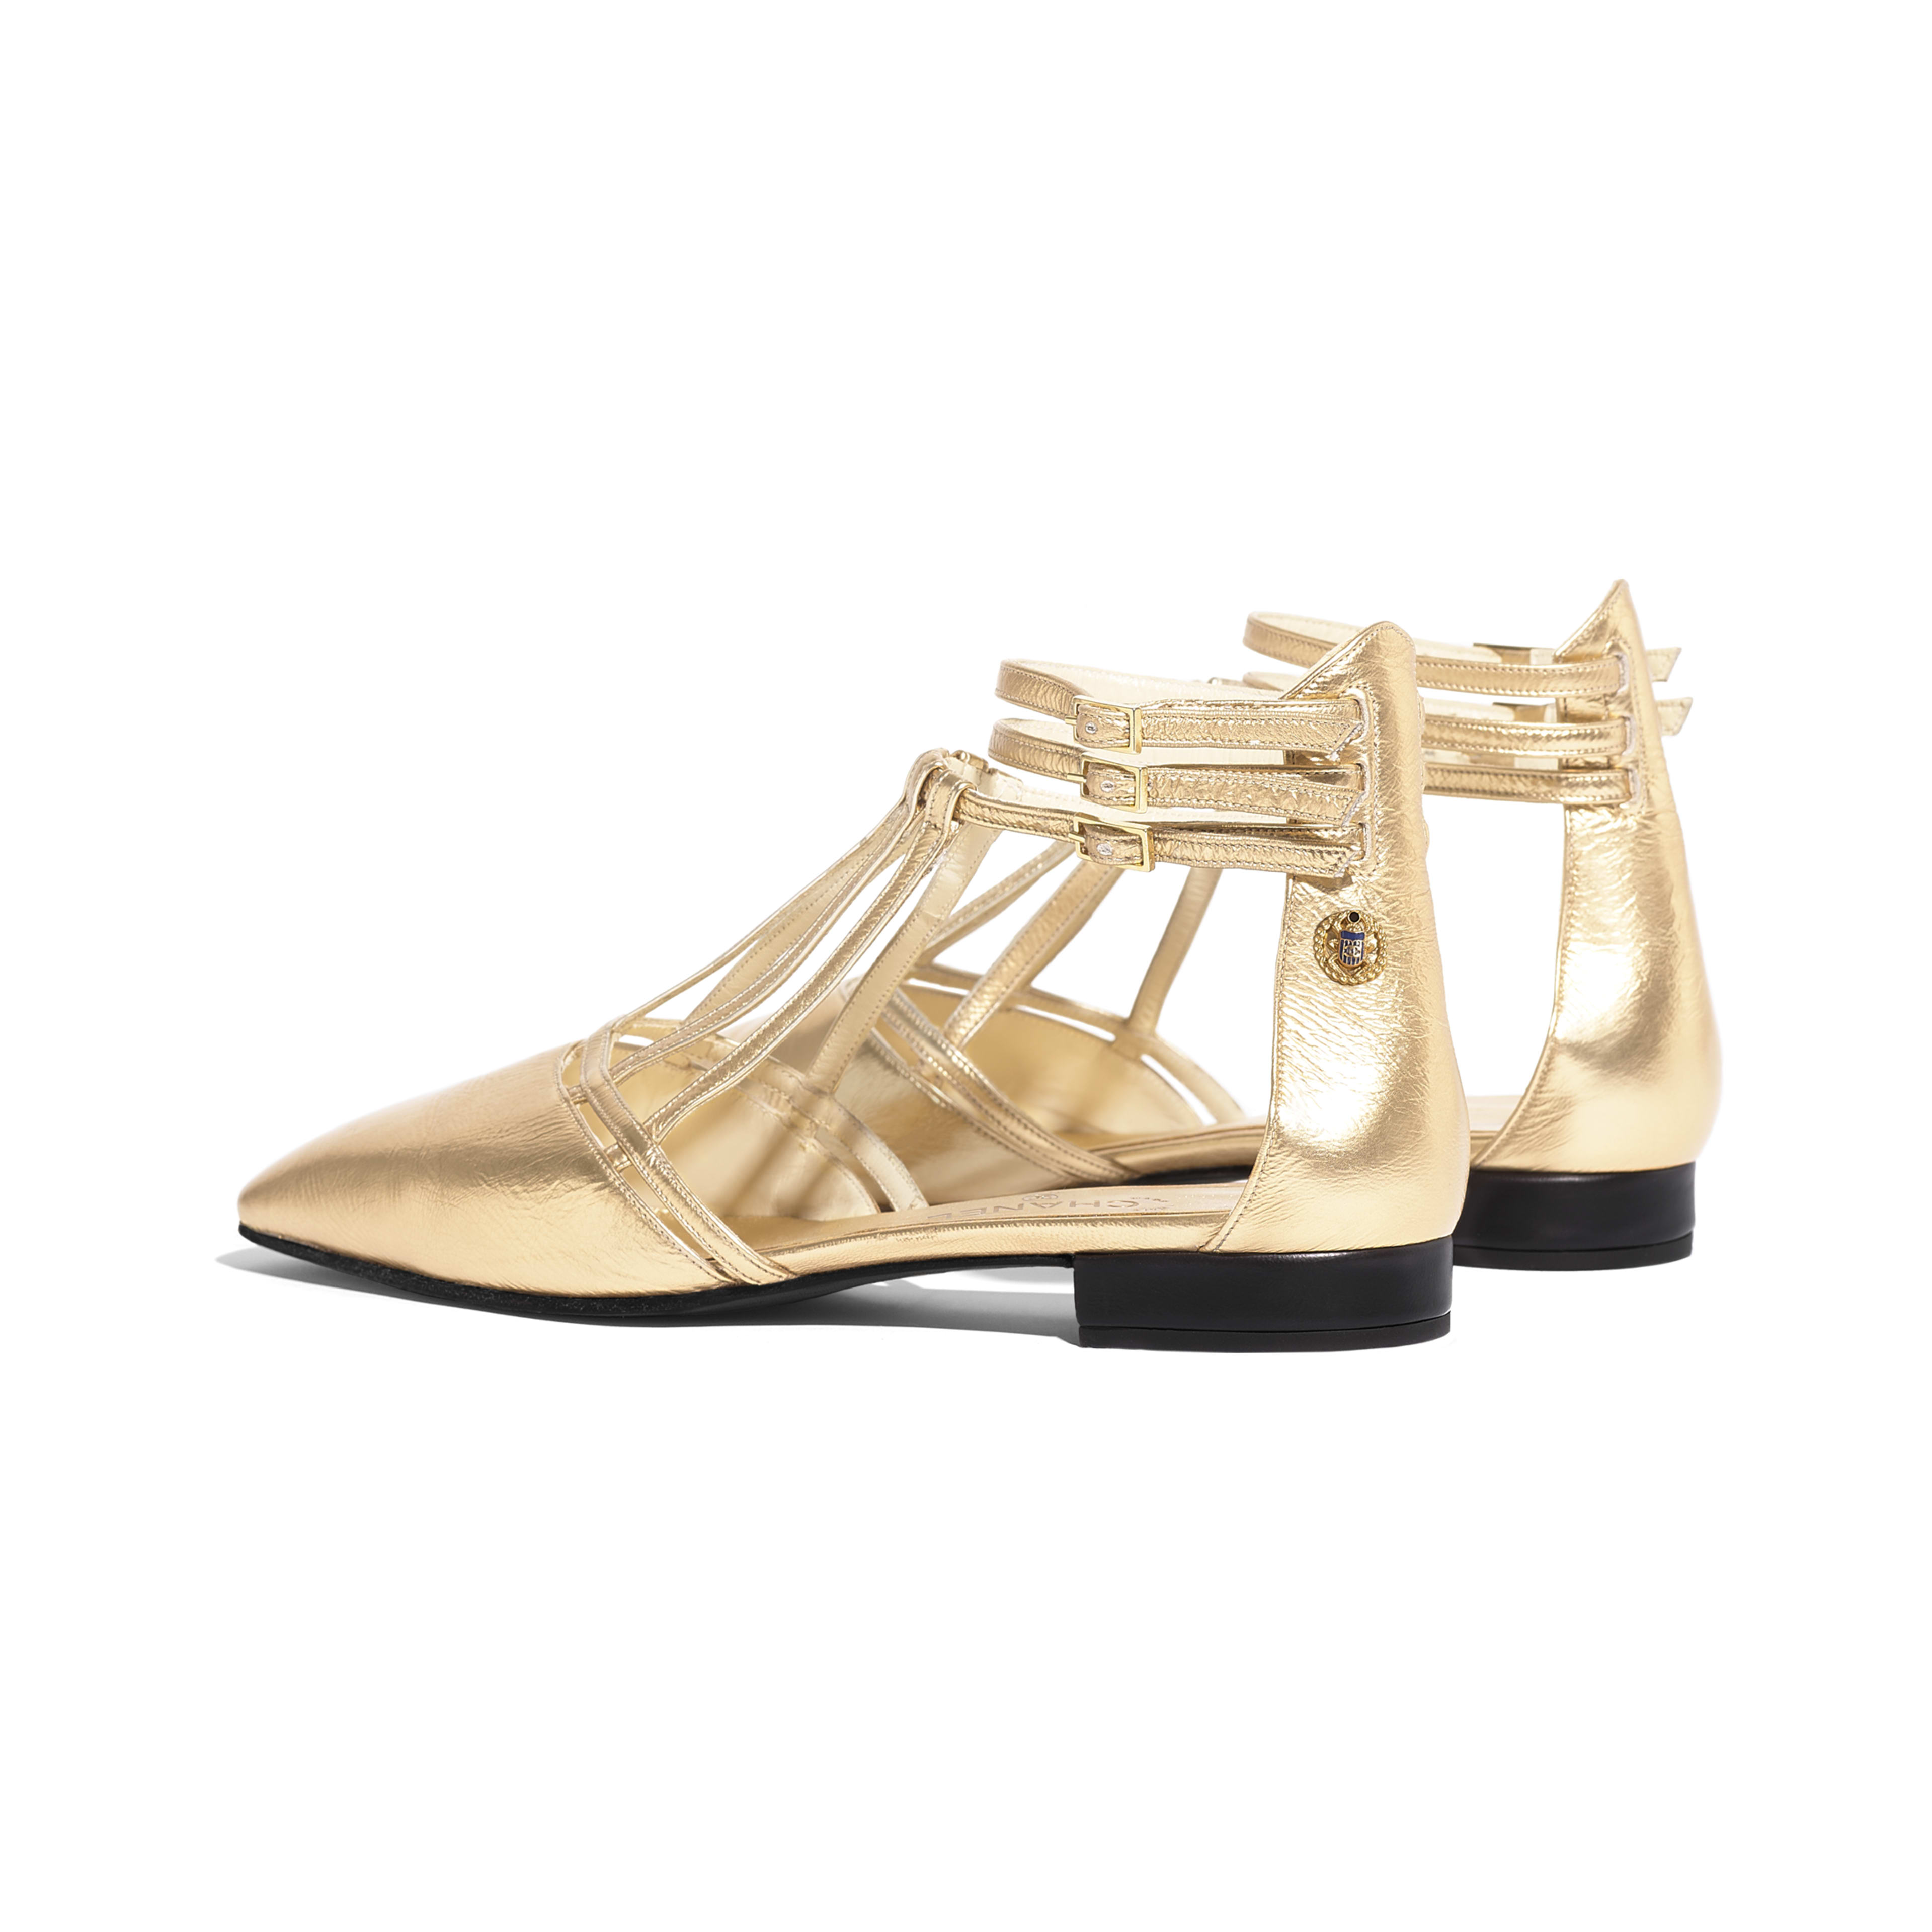 Sandals - Gold - Laminated Lambskin - Other view - see full sized version